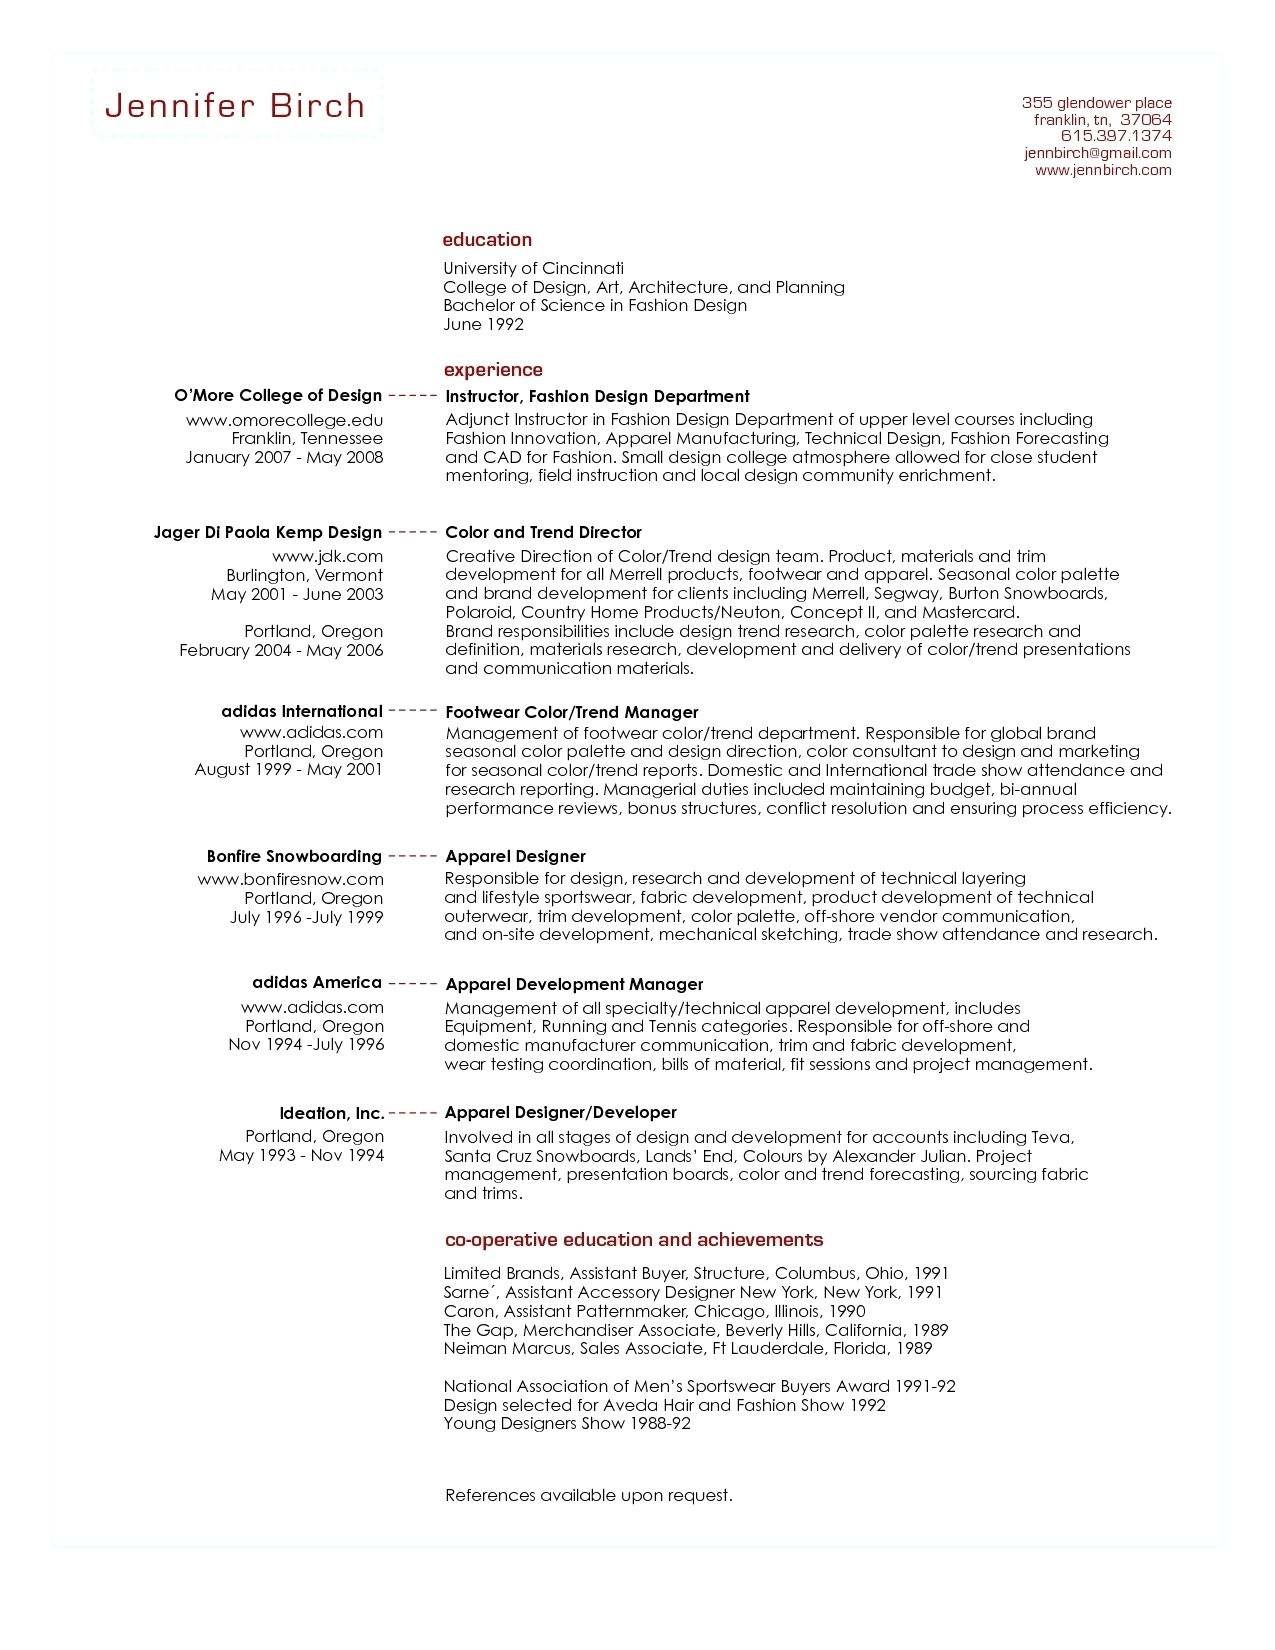 Best Resume Services - 48 Unbelievable Professional Resume Writers